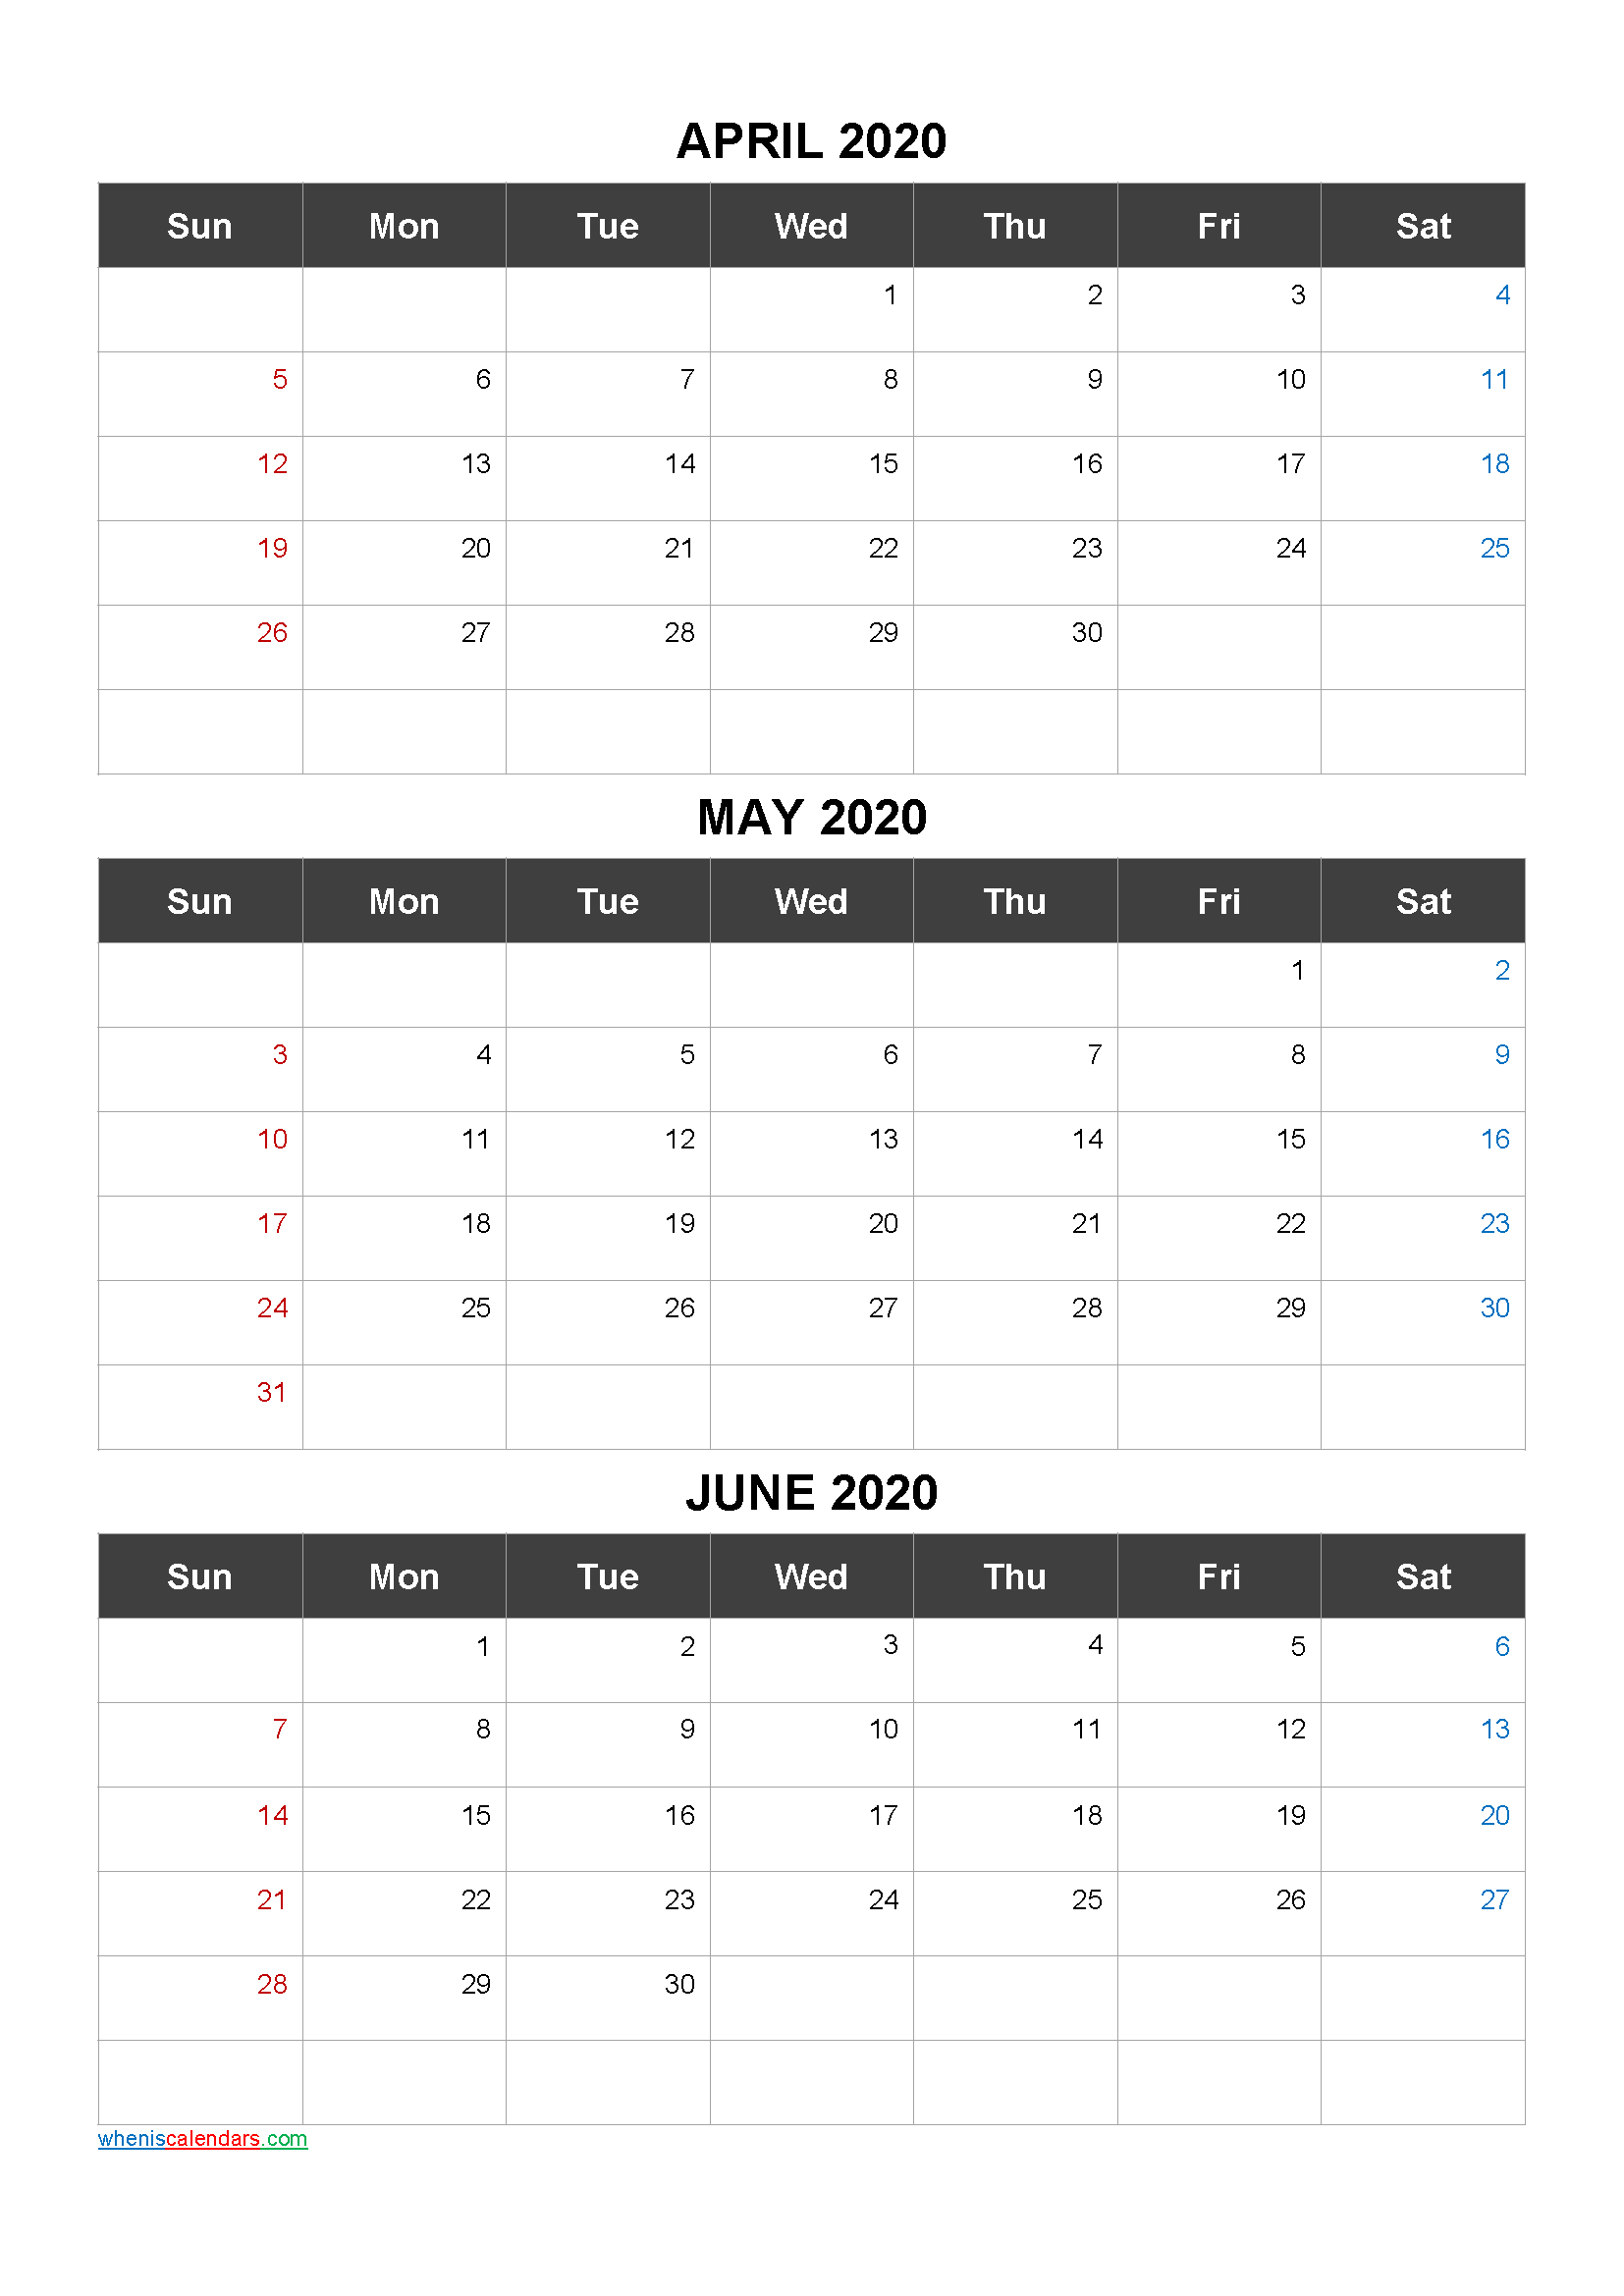 Free Printable 3 Month Calendar2020 April May June